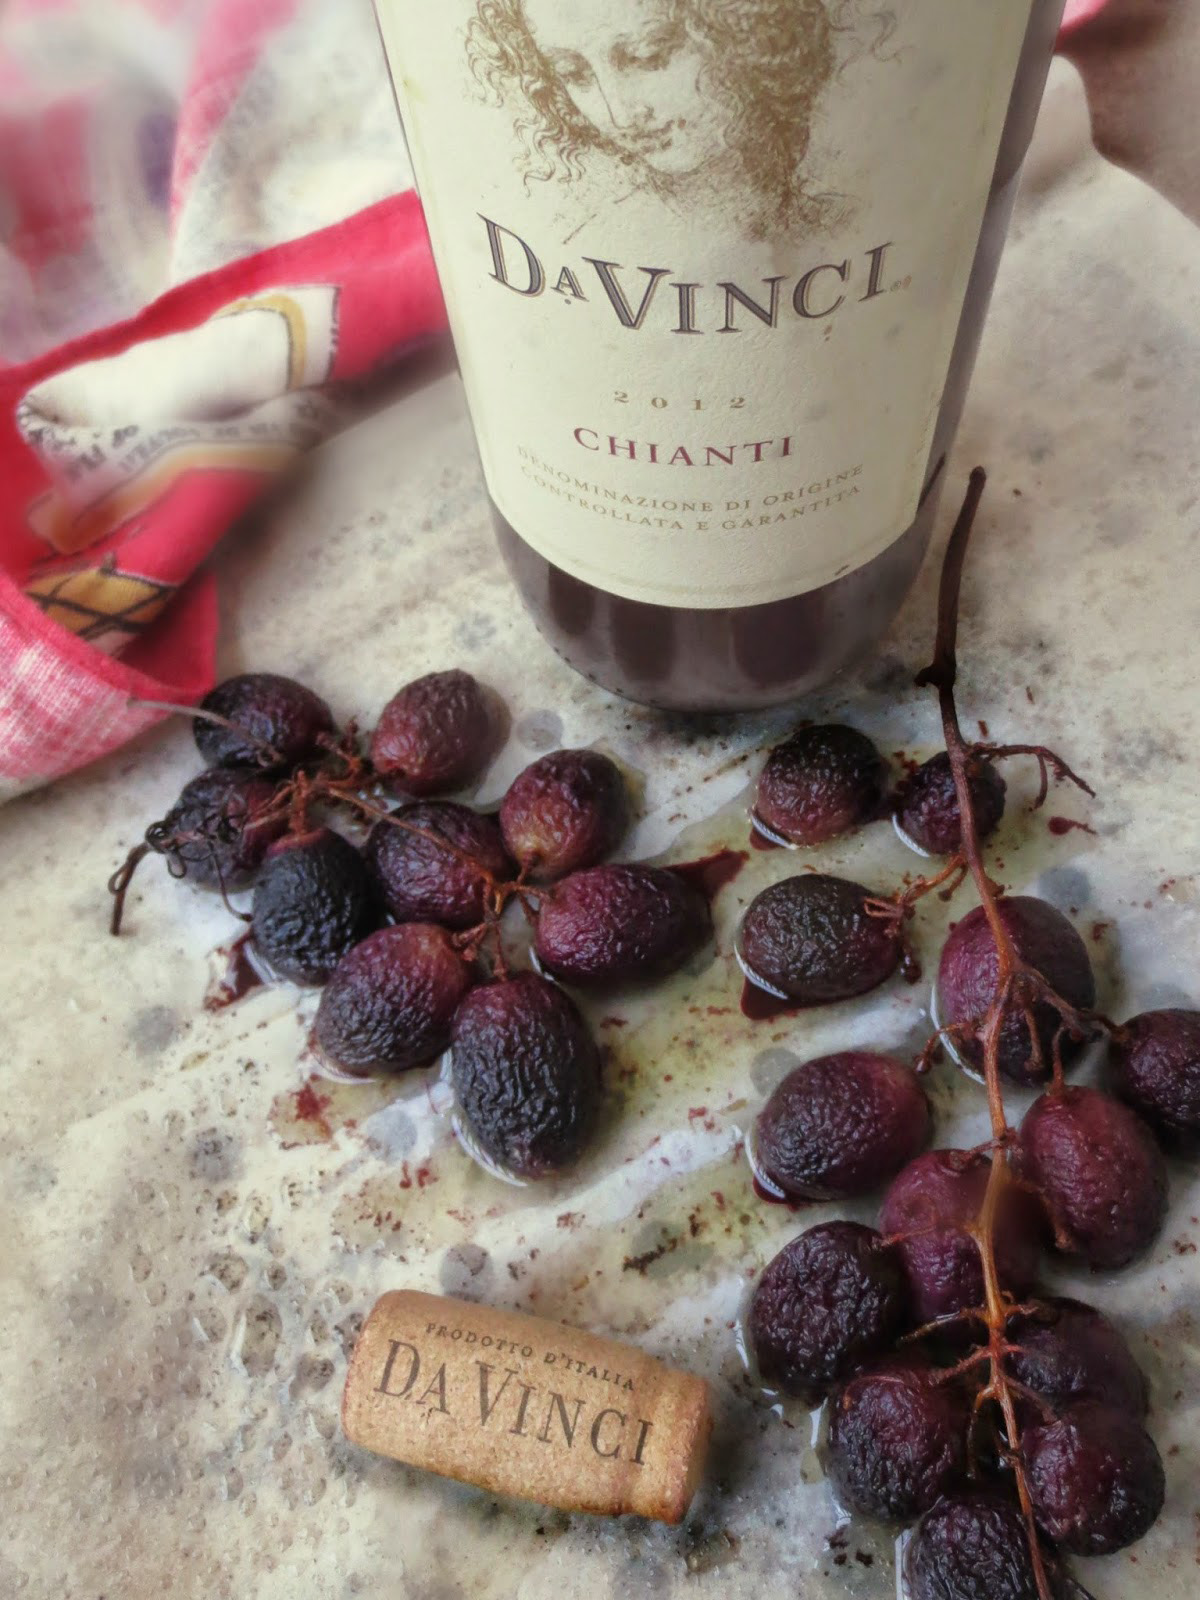 Chianti Soaked Grapes for Roasted Butternut Squash Risotto